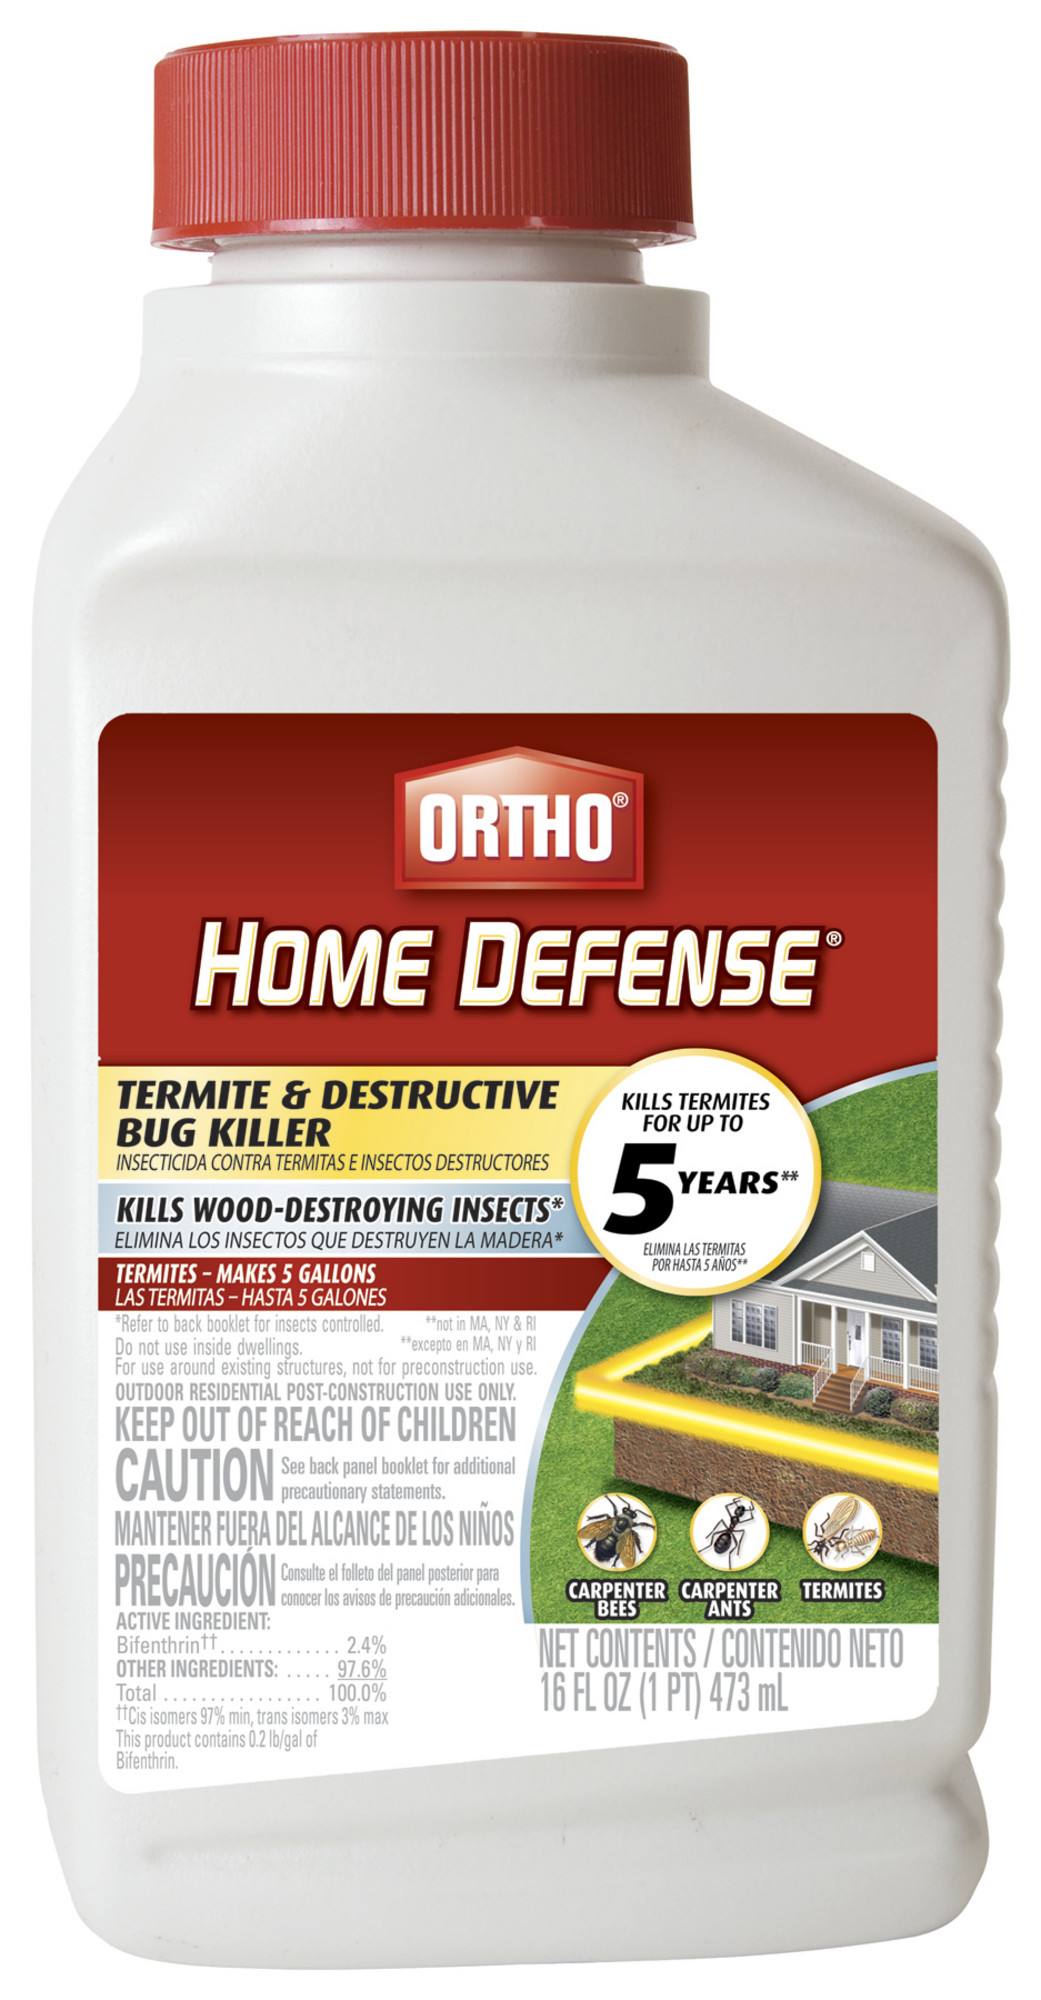 Ortho Home Defense Max Termite Destructive Bug